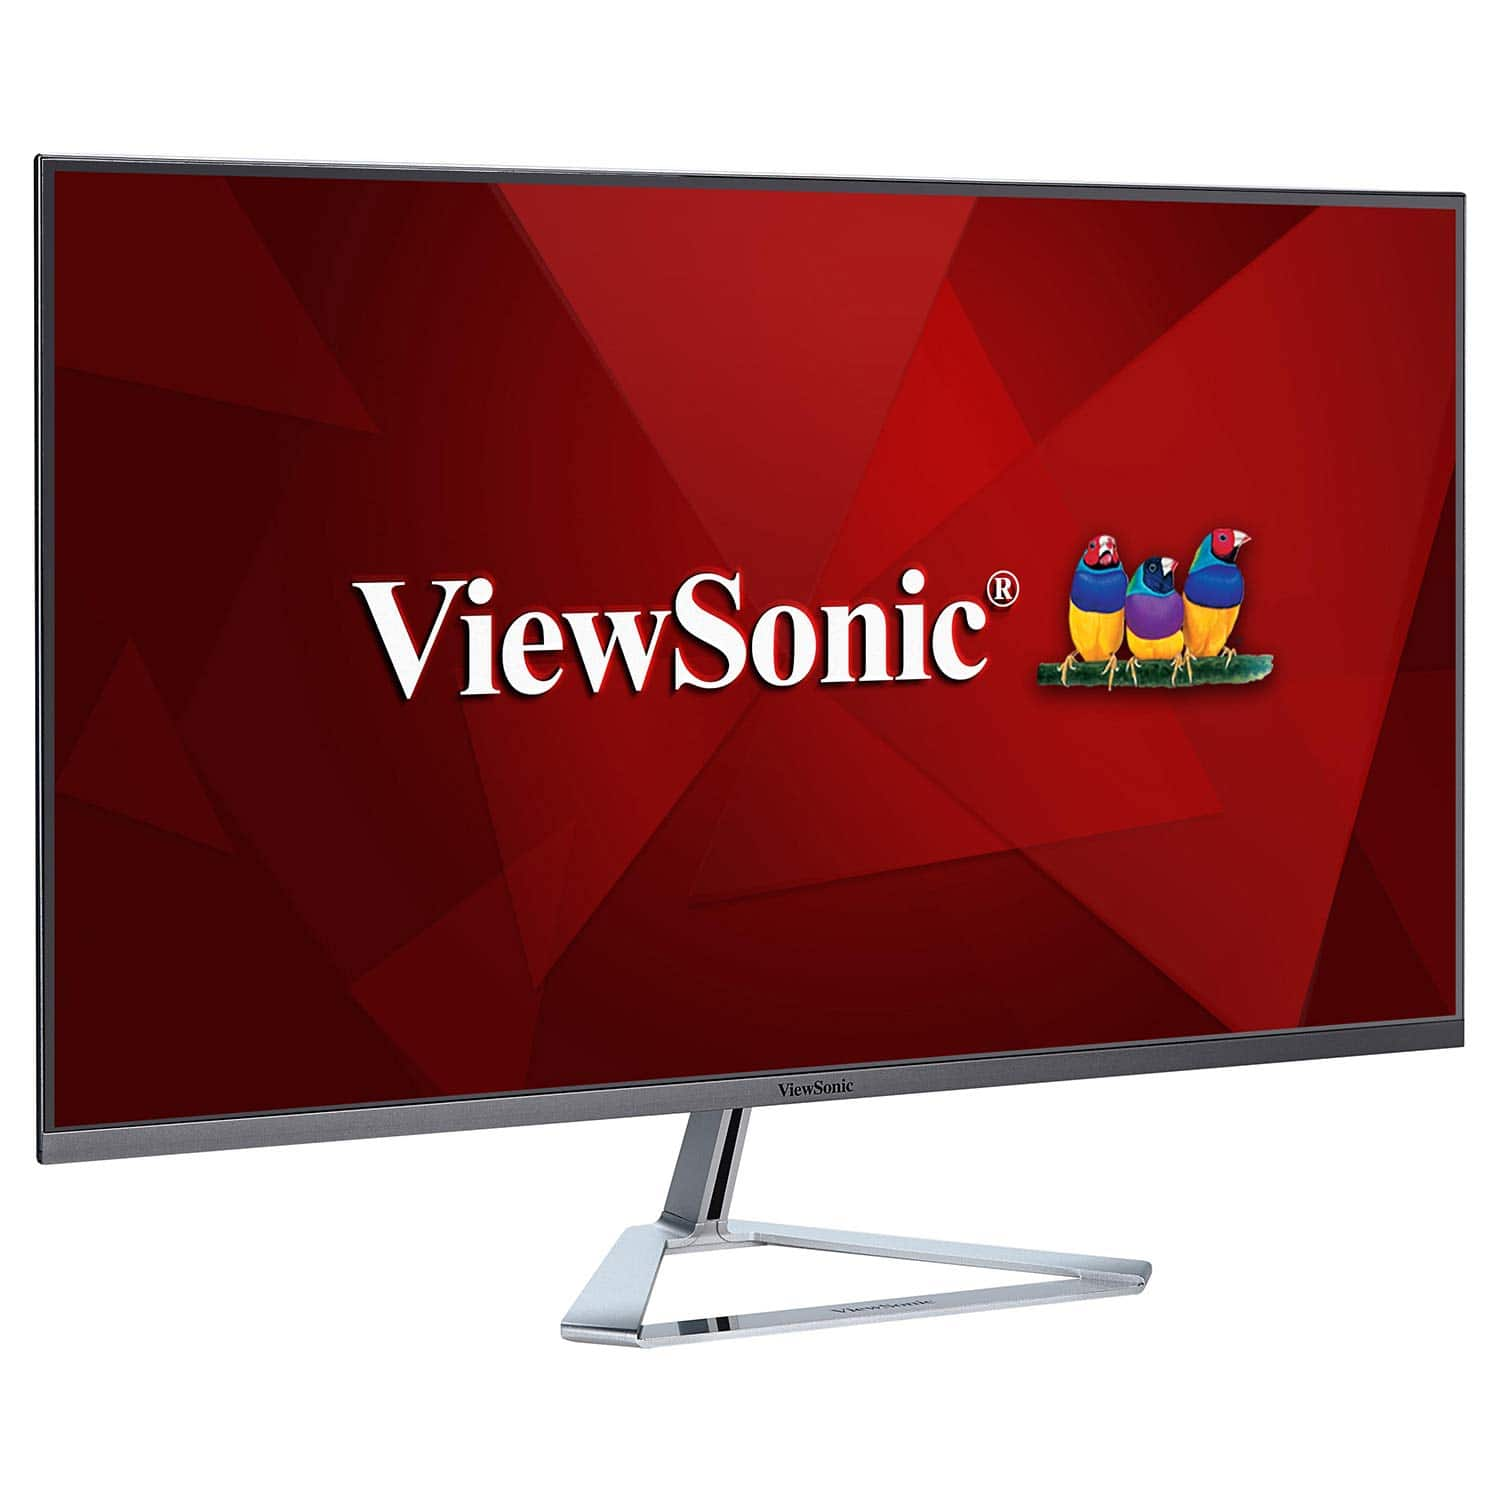 ViewSonic VX3276-MHD 32 Inch 1080p Frameless Widescreen IPS Monitor with HDMI & DisplayPort: $169.99 + Free Shipping